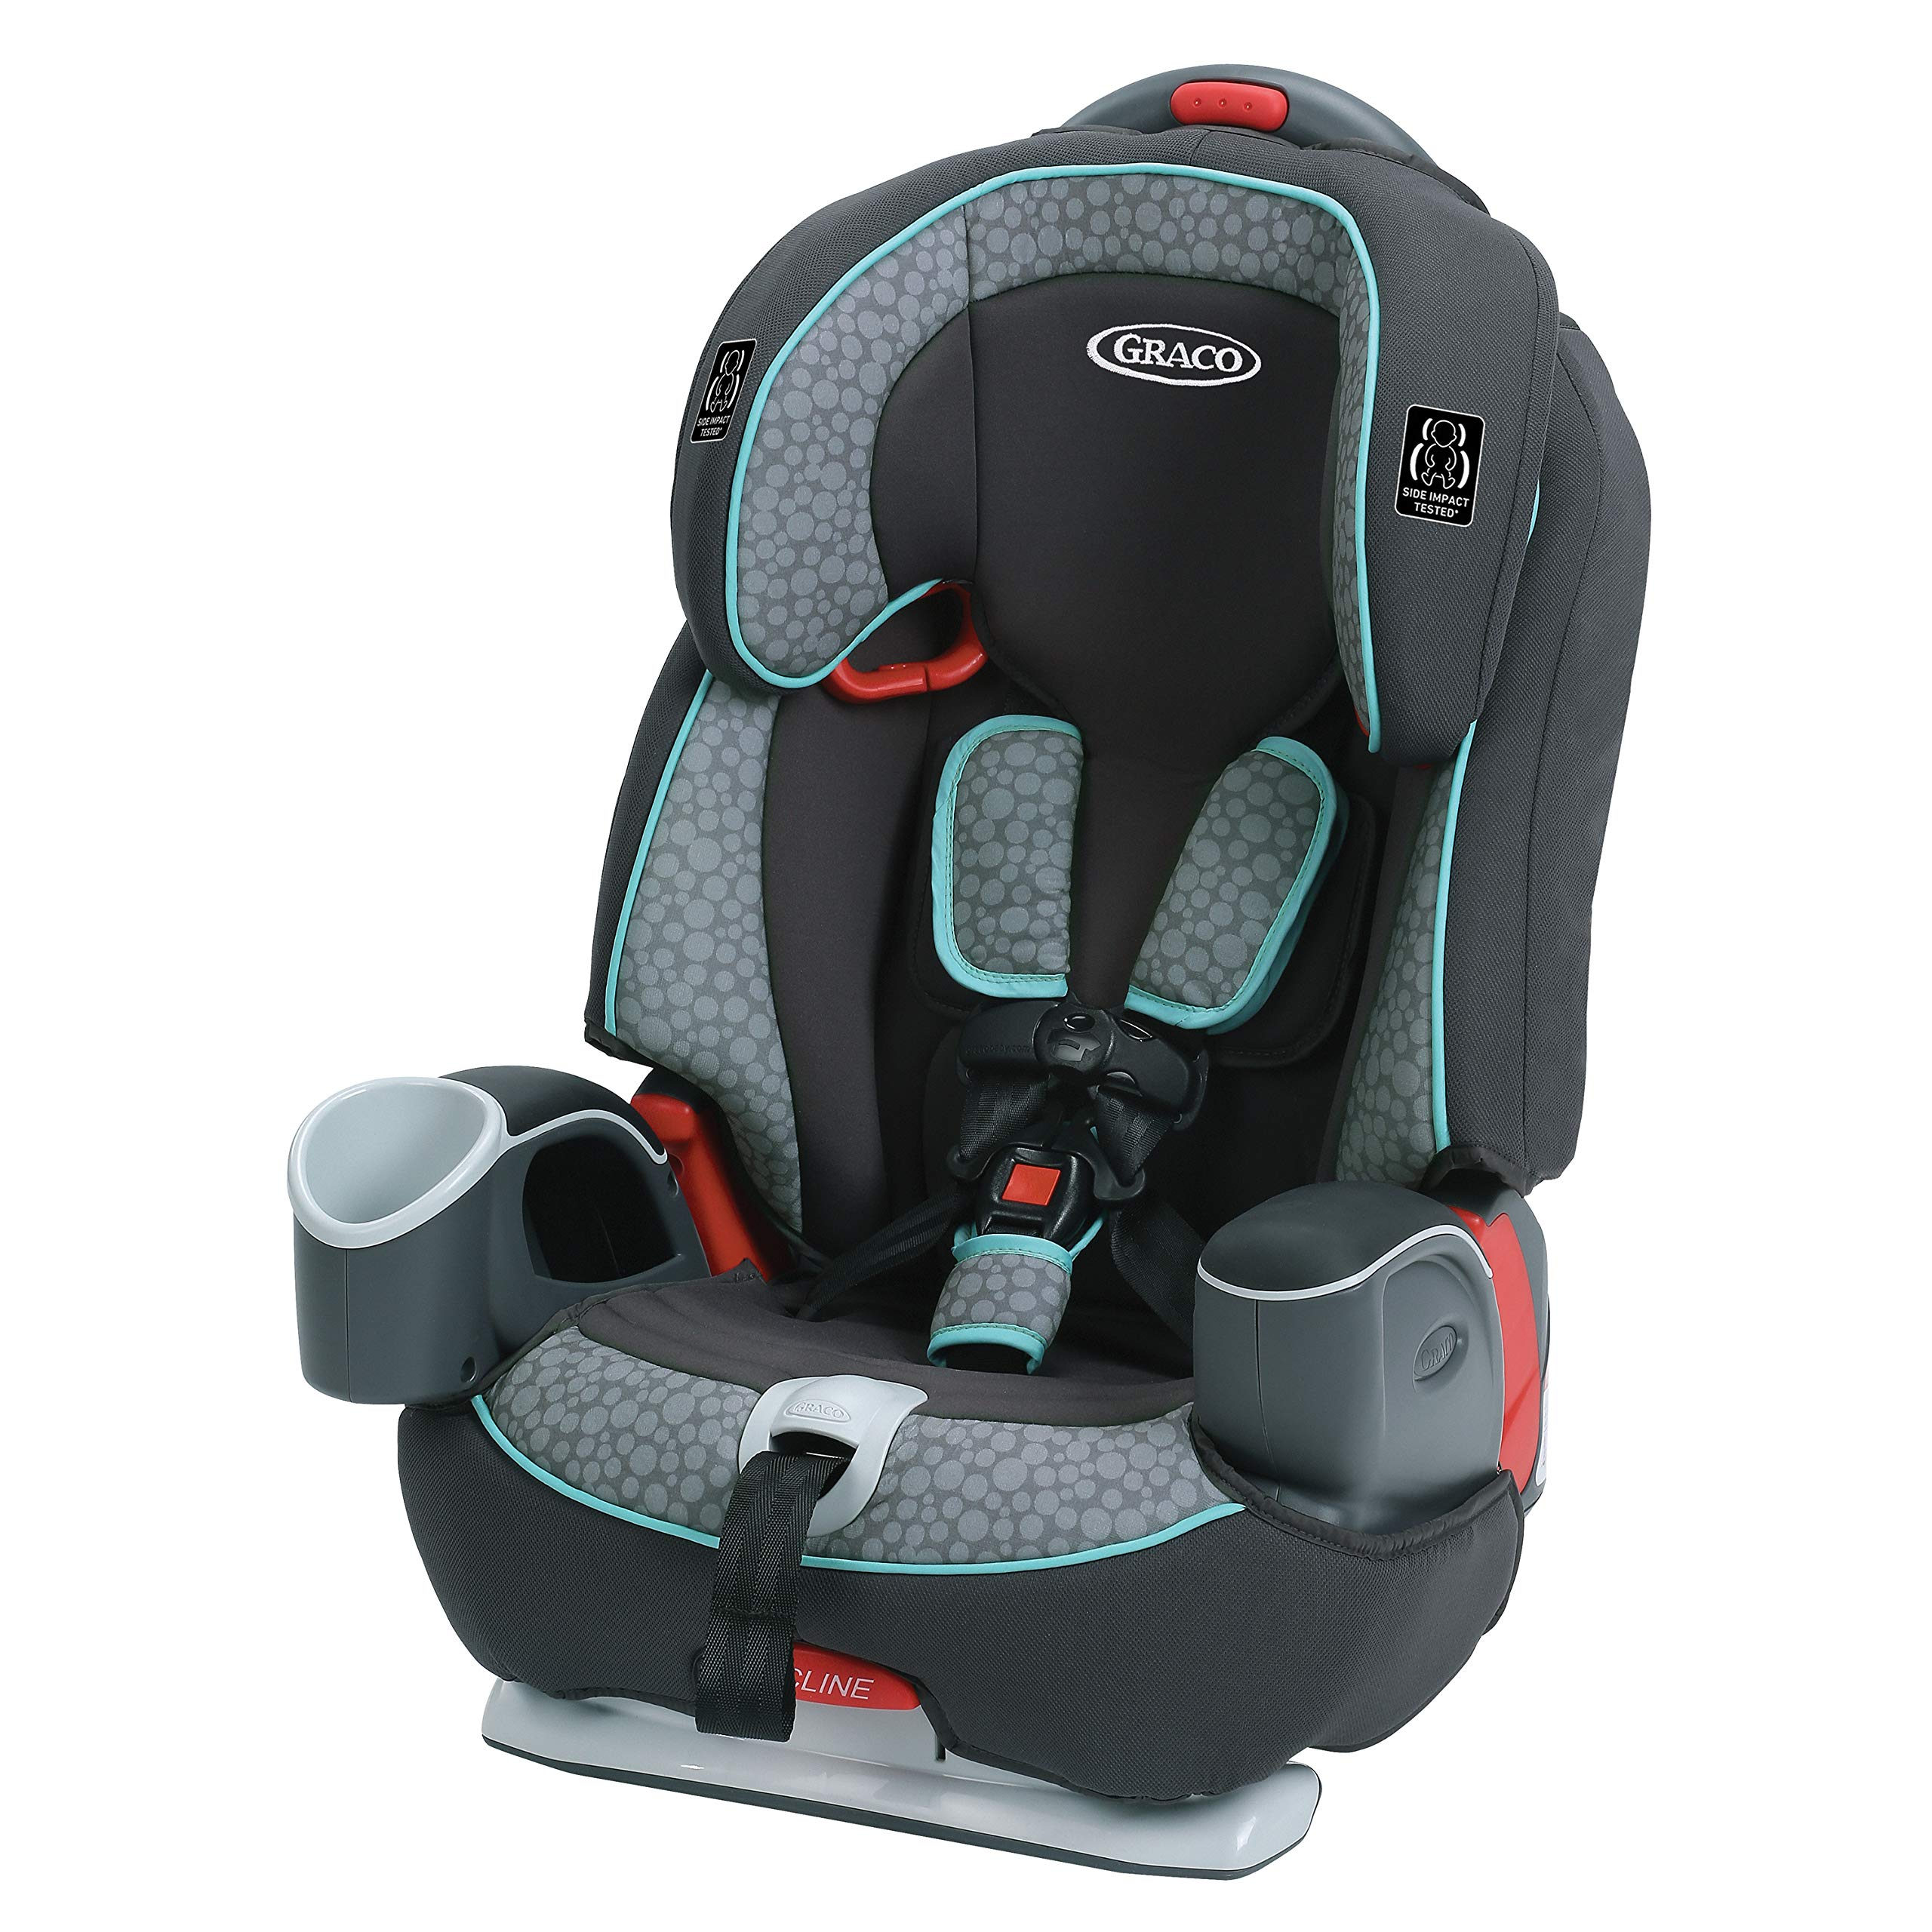 5d589d1ad6d Amazon.com   Graco Nautilus 65 3-in-1 Harness Booster Car Seat ...